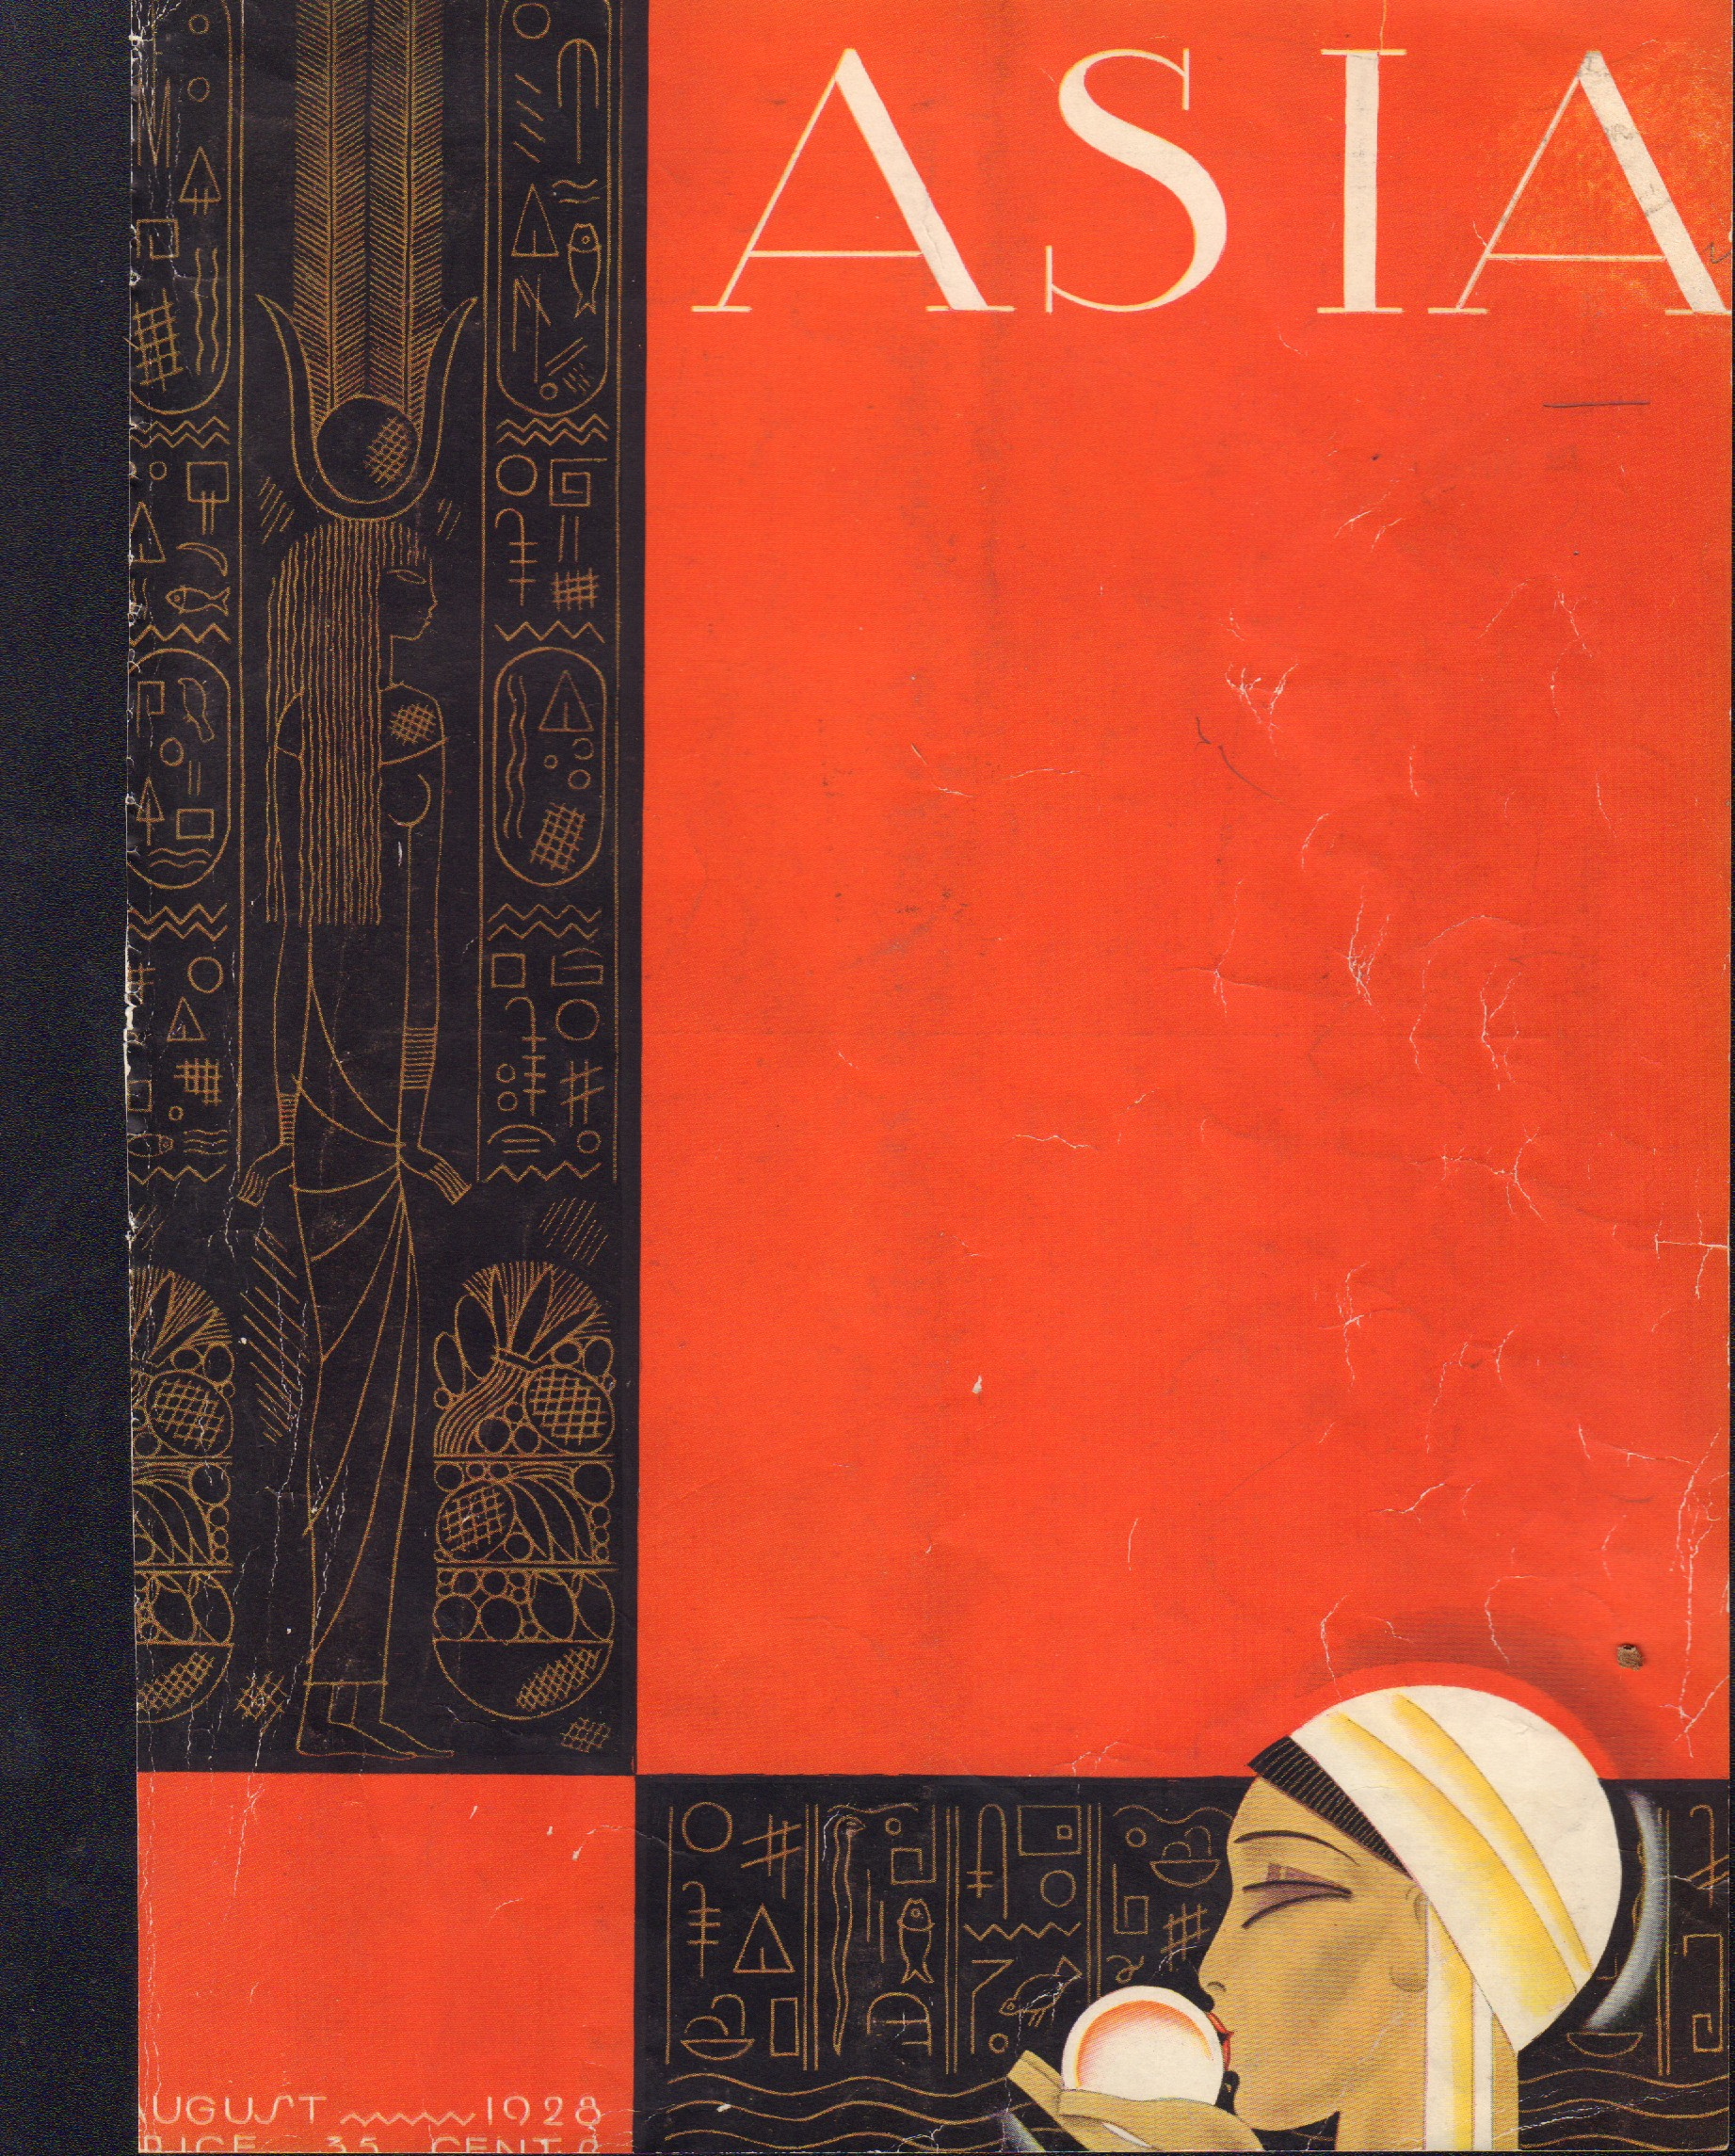 Image for Asia - August 1928 - Cover only